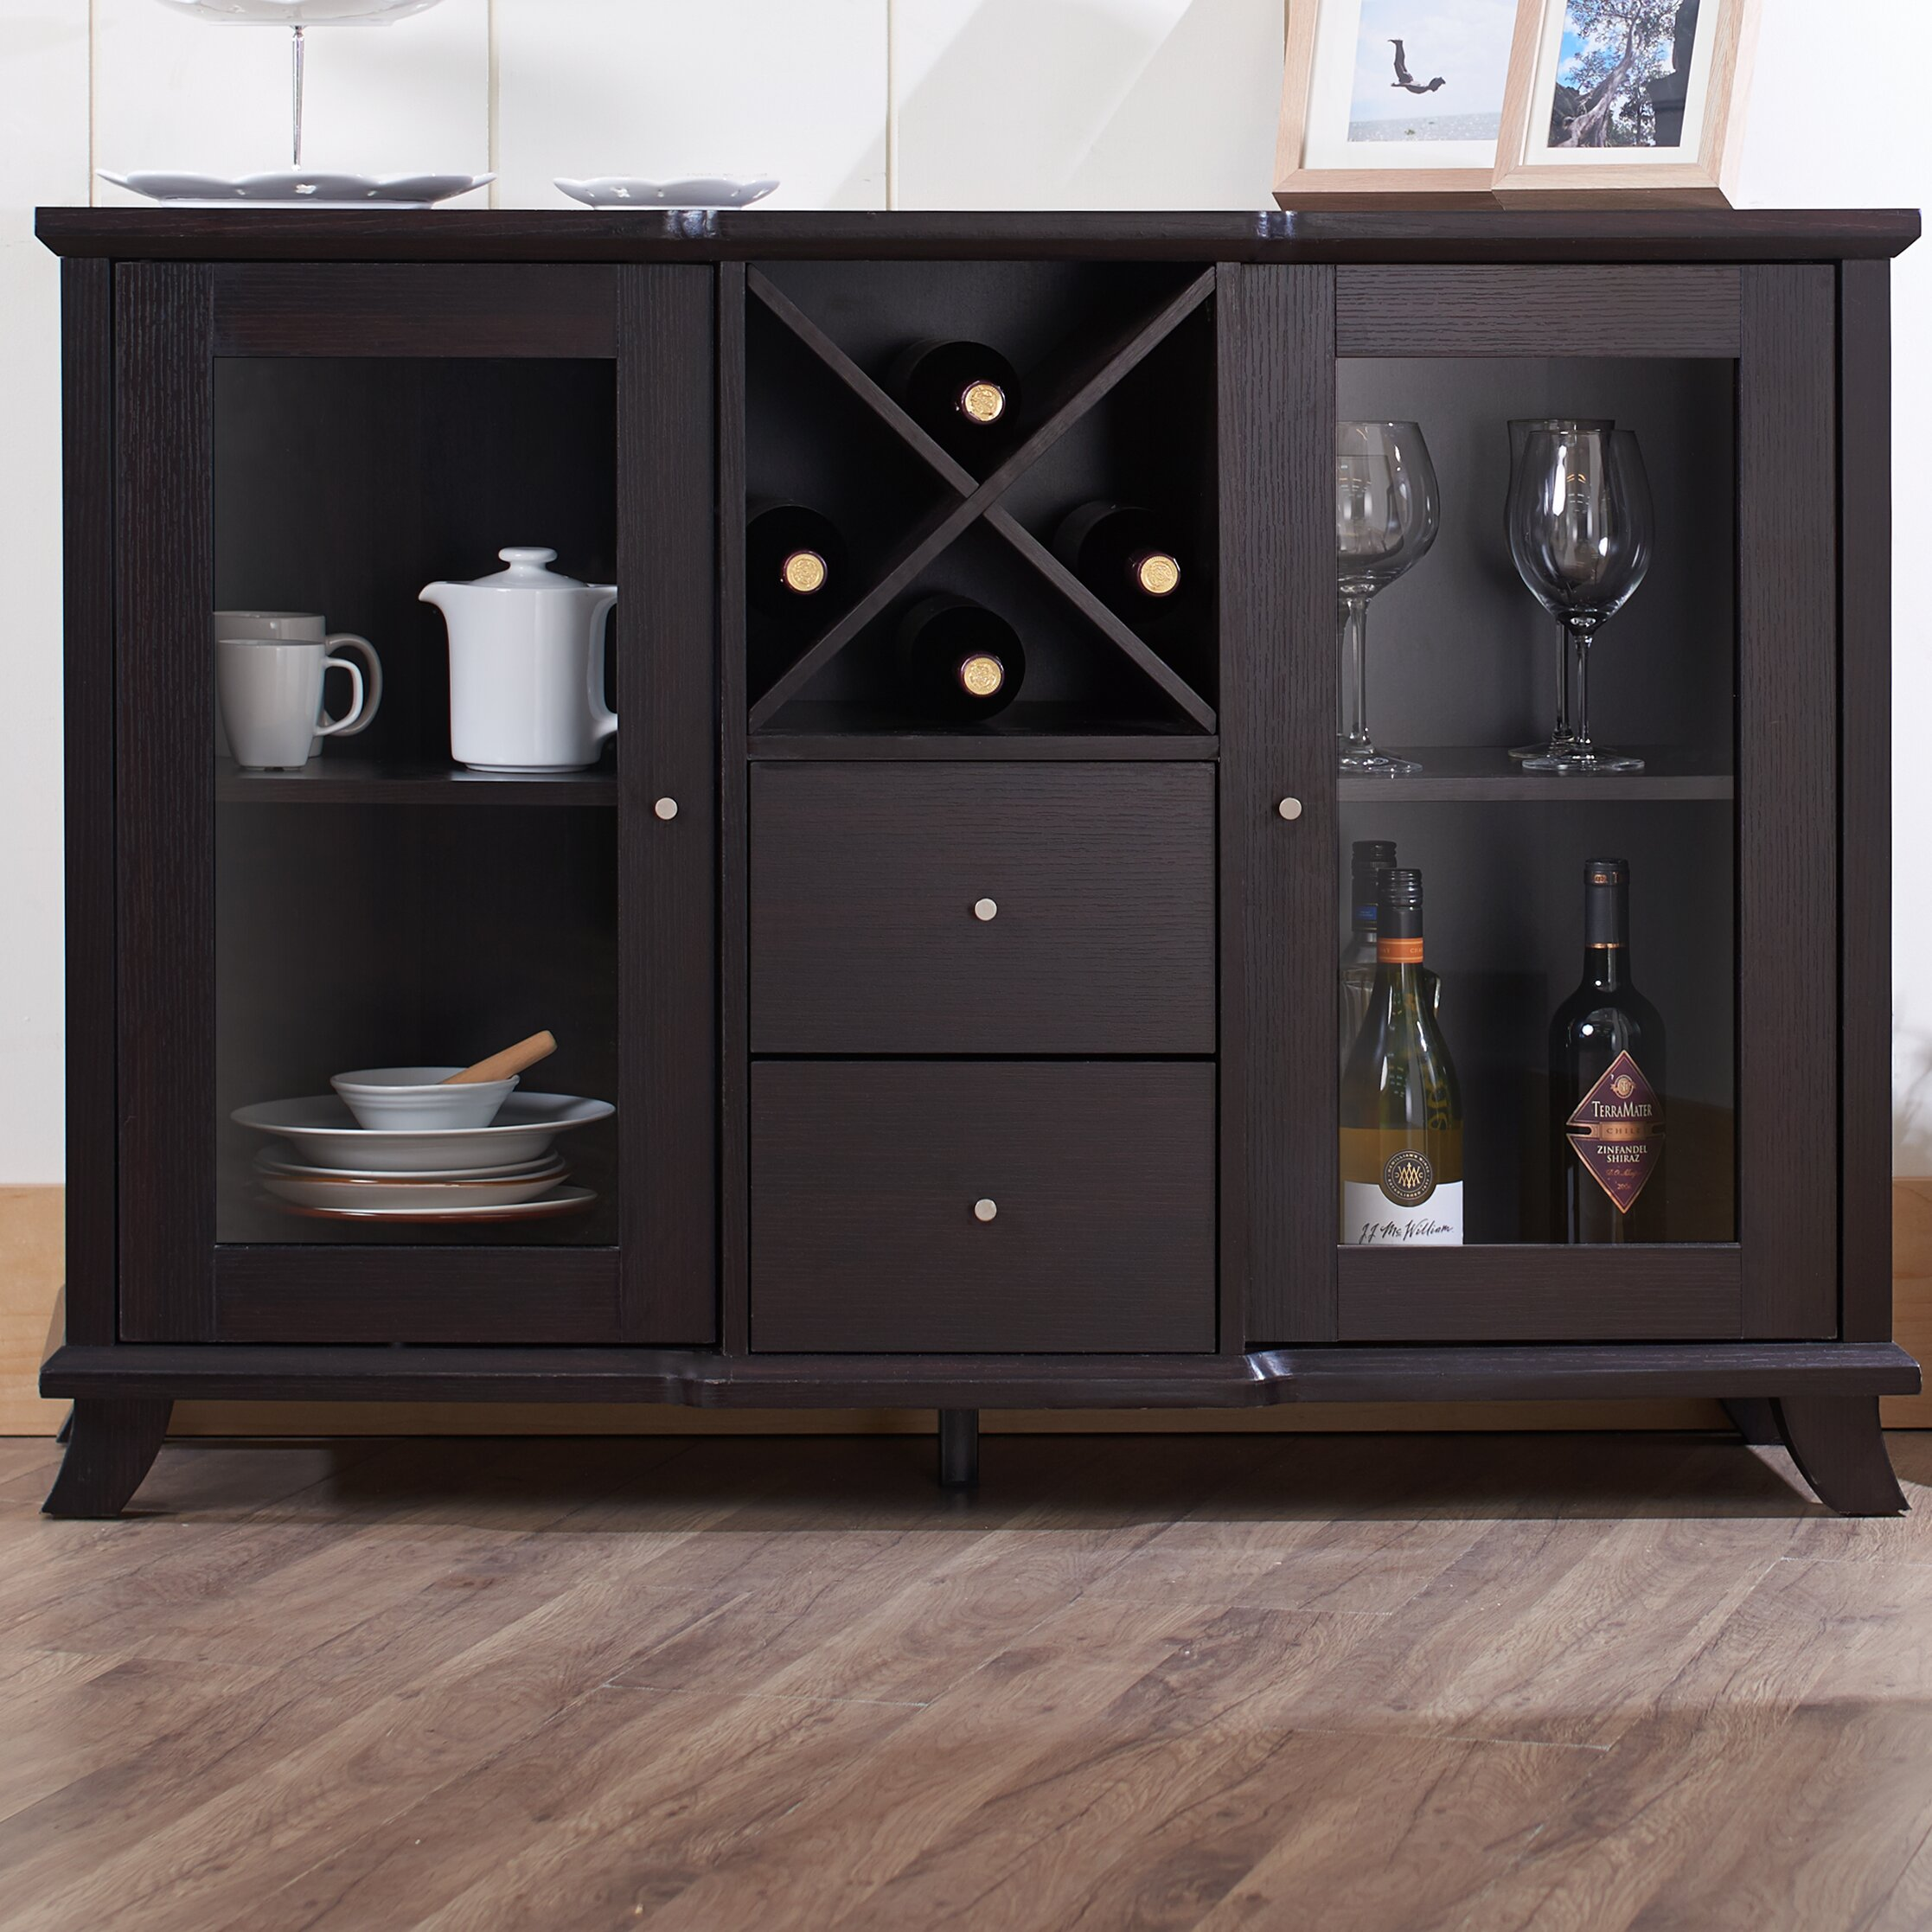 Hokku designs venetta dining buffet cabinet reviews for Dining room cupboard designs